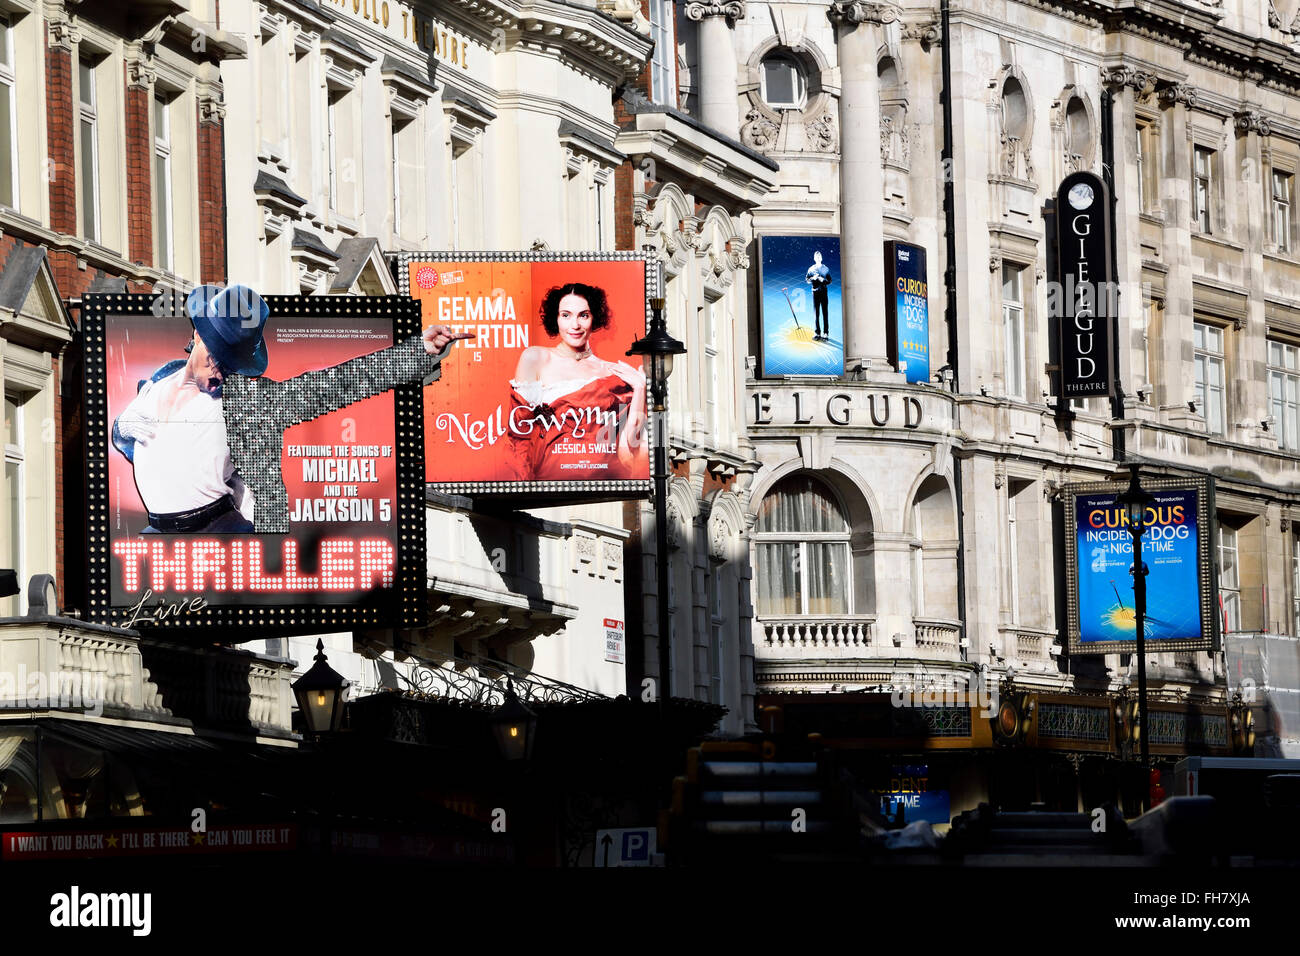 London, England, UK. Theatres on Shaftesbury Avenue - Thriller (Lyric Theatre); Nell Gwynn (Apollo) Curious Incident... - Stock Image